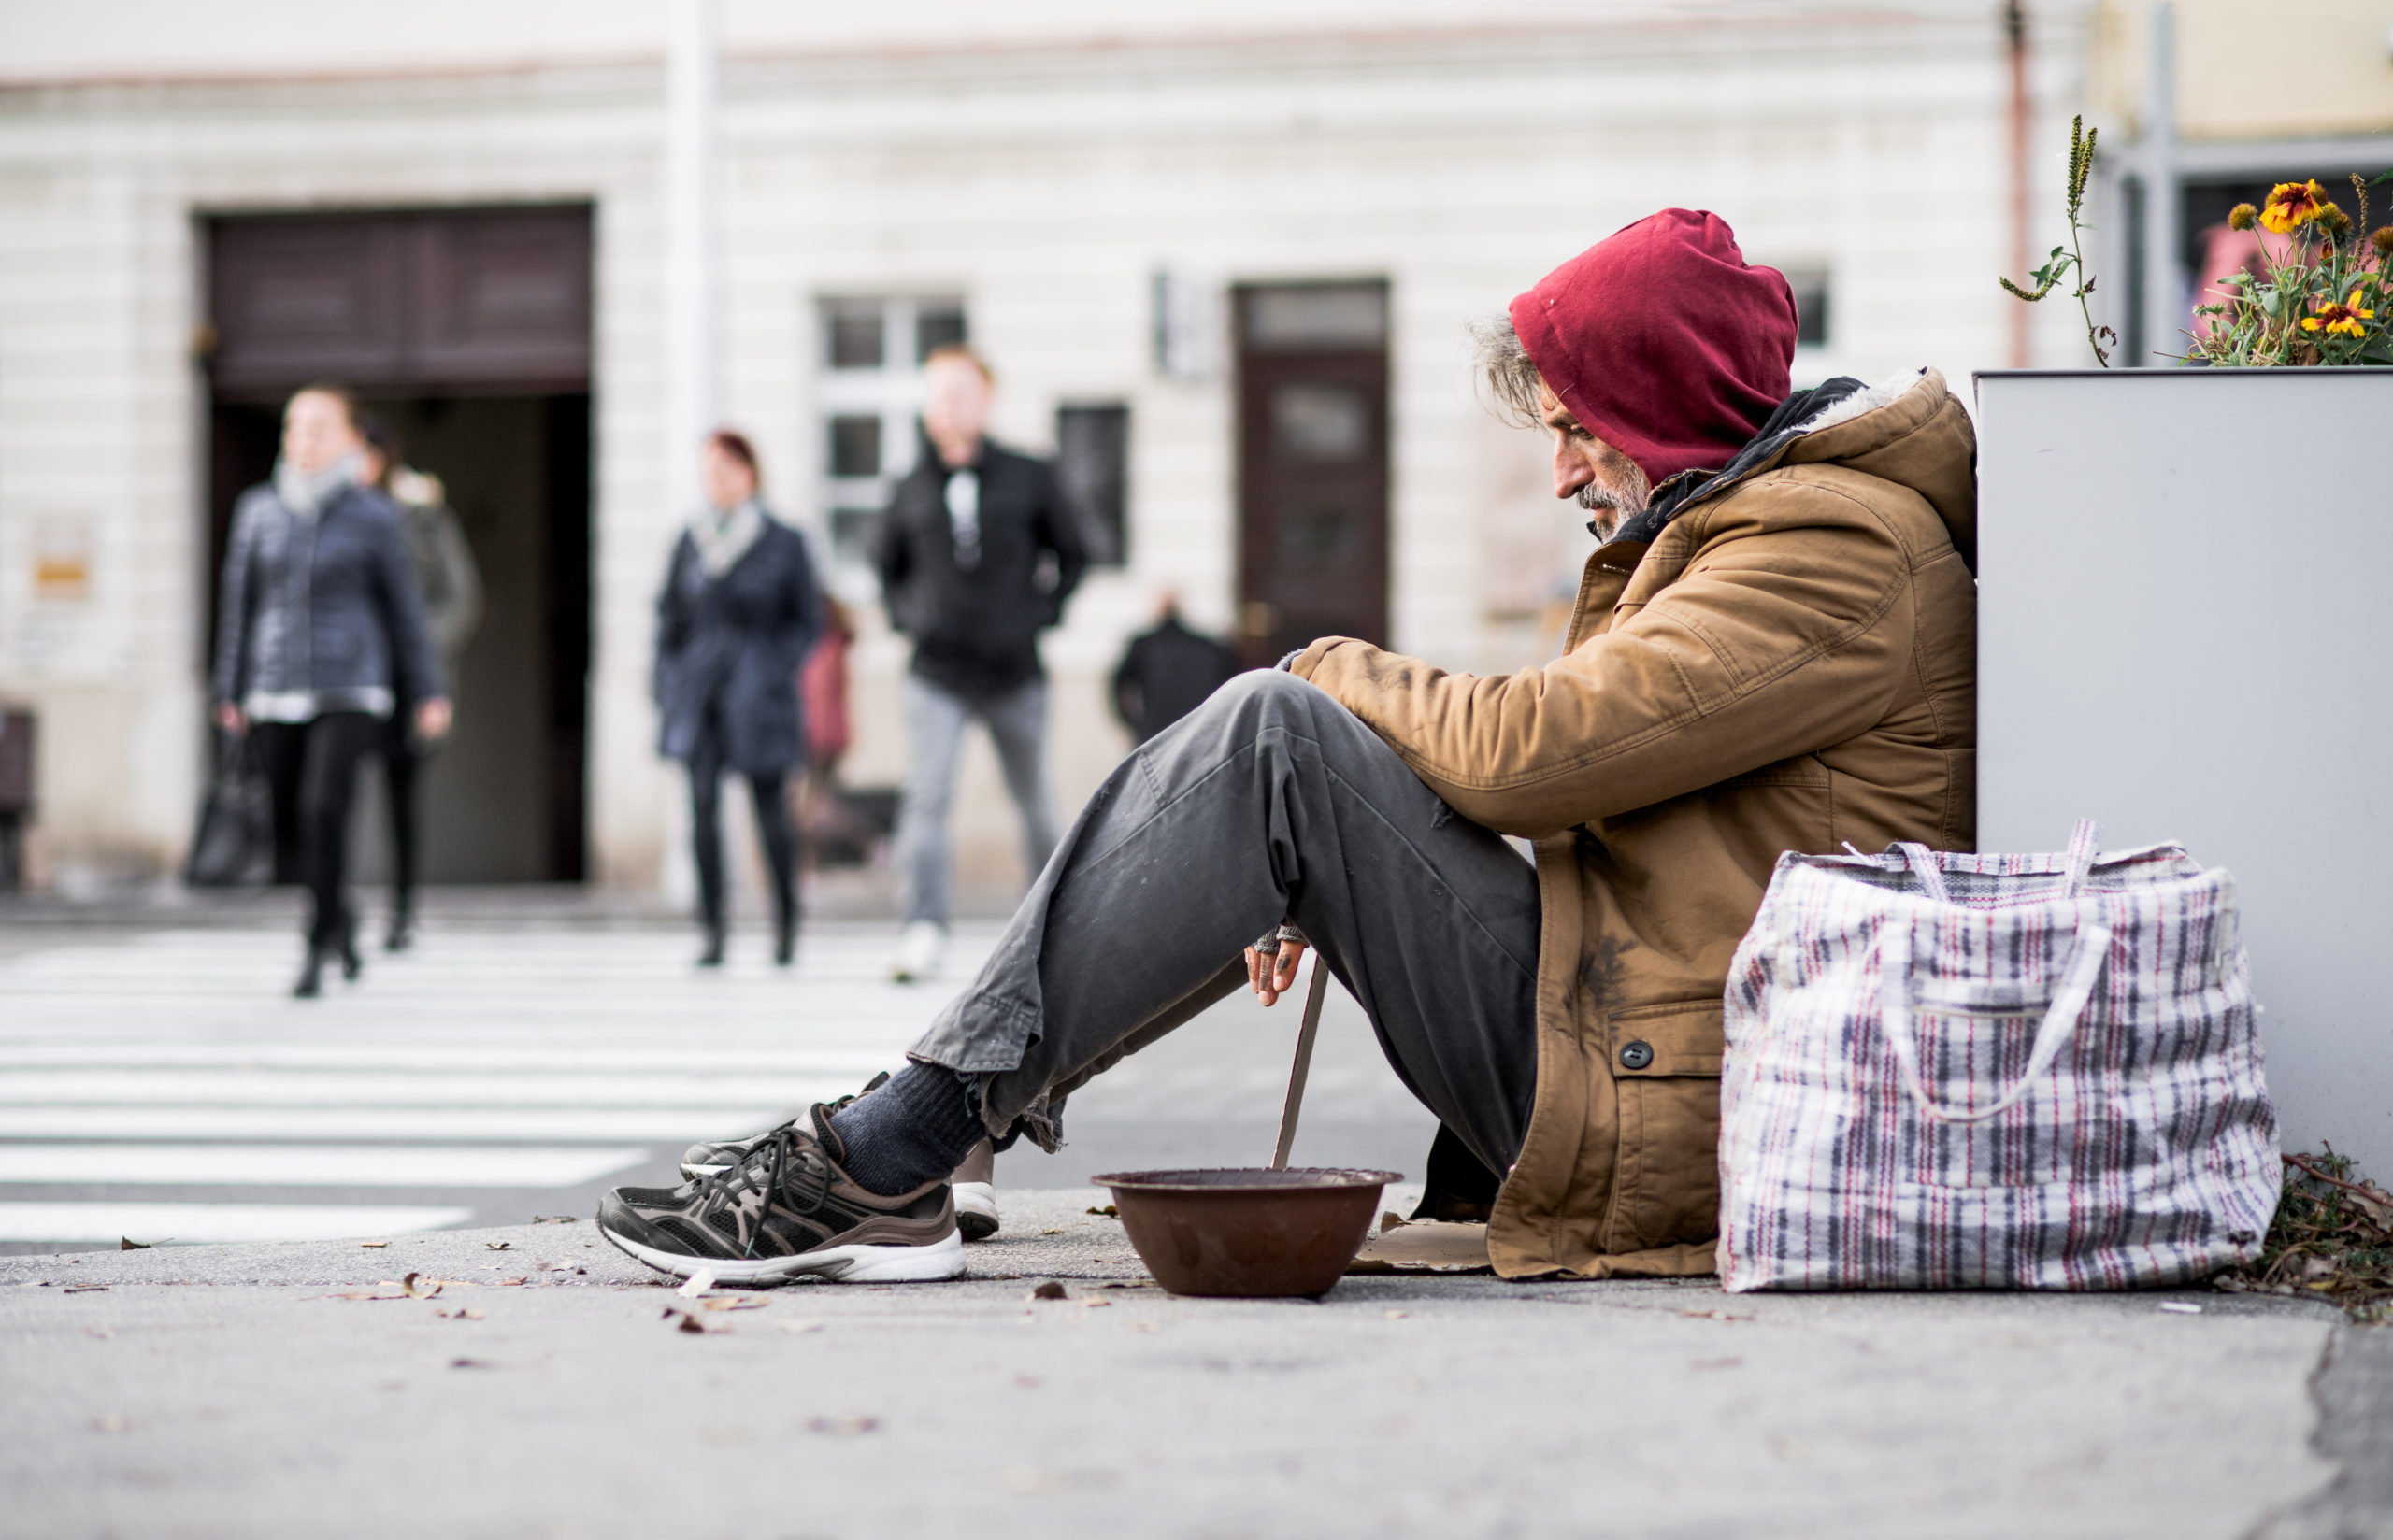 The SDS Supportive Housing fund raised $106 Million to fund permanent supportive housing that can help homeless persons move indoors, like this gentleman who is living on the street.